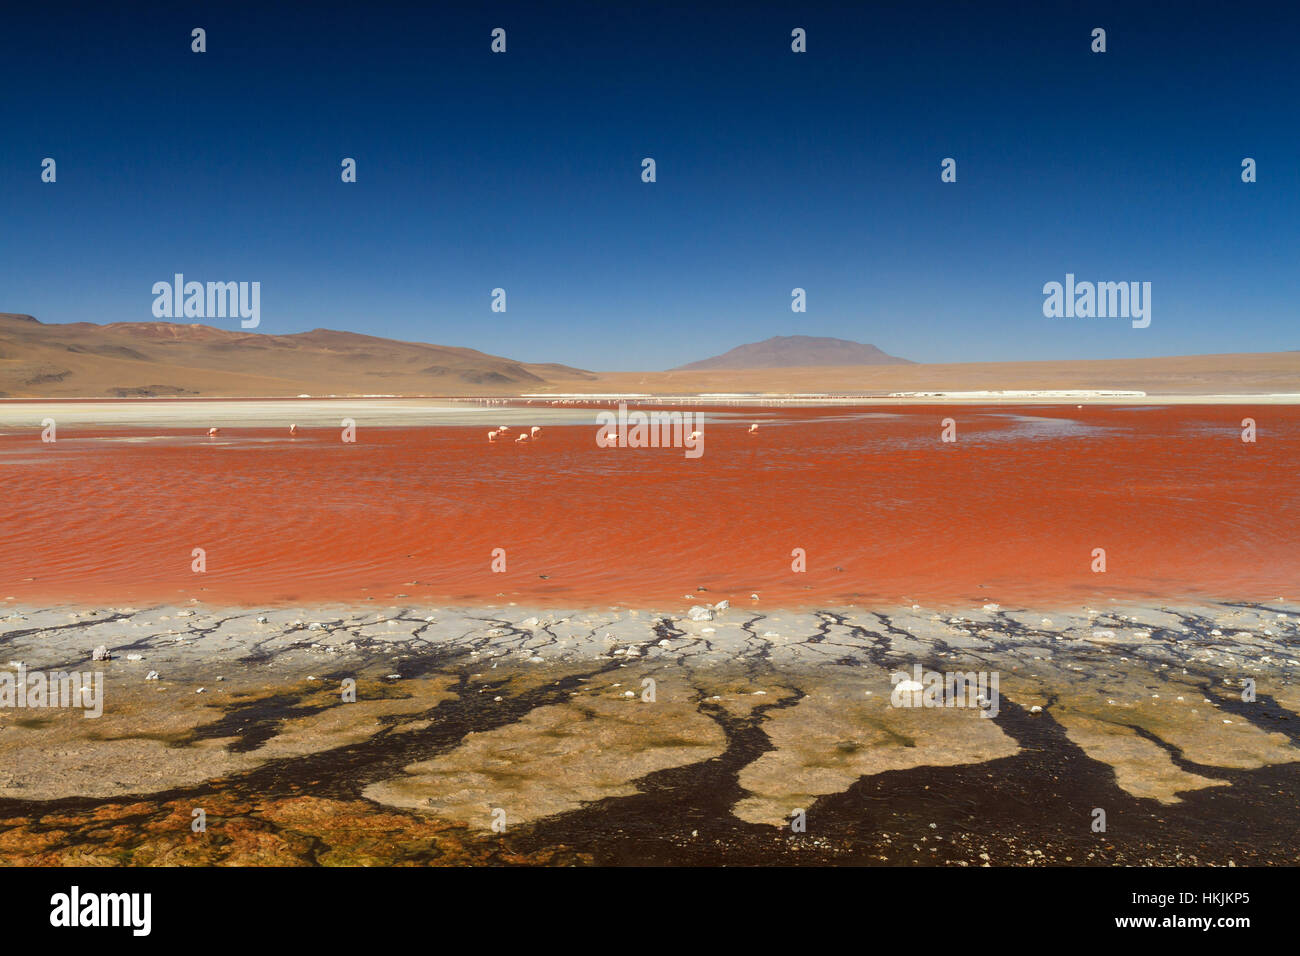 Flamingos at Laguna Colorada, Altiplano, Bolivia - Stock Image